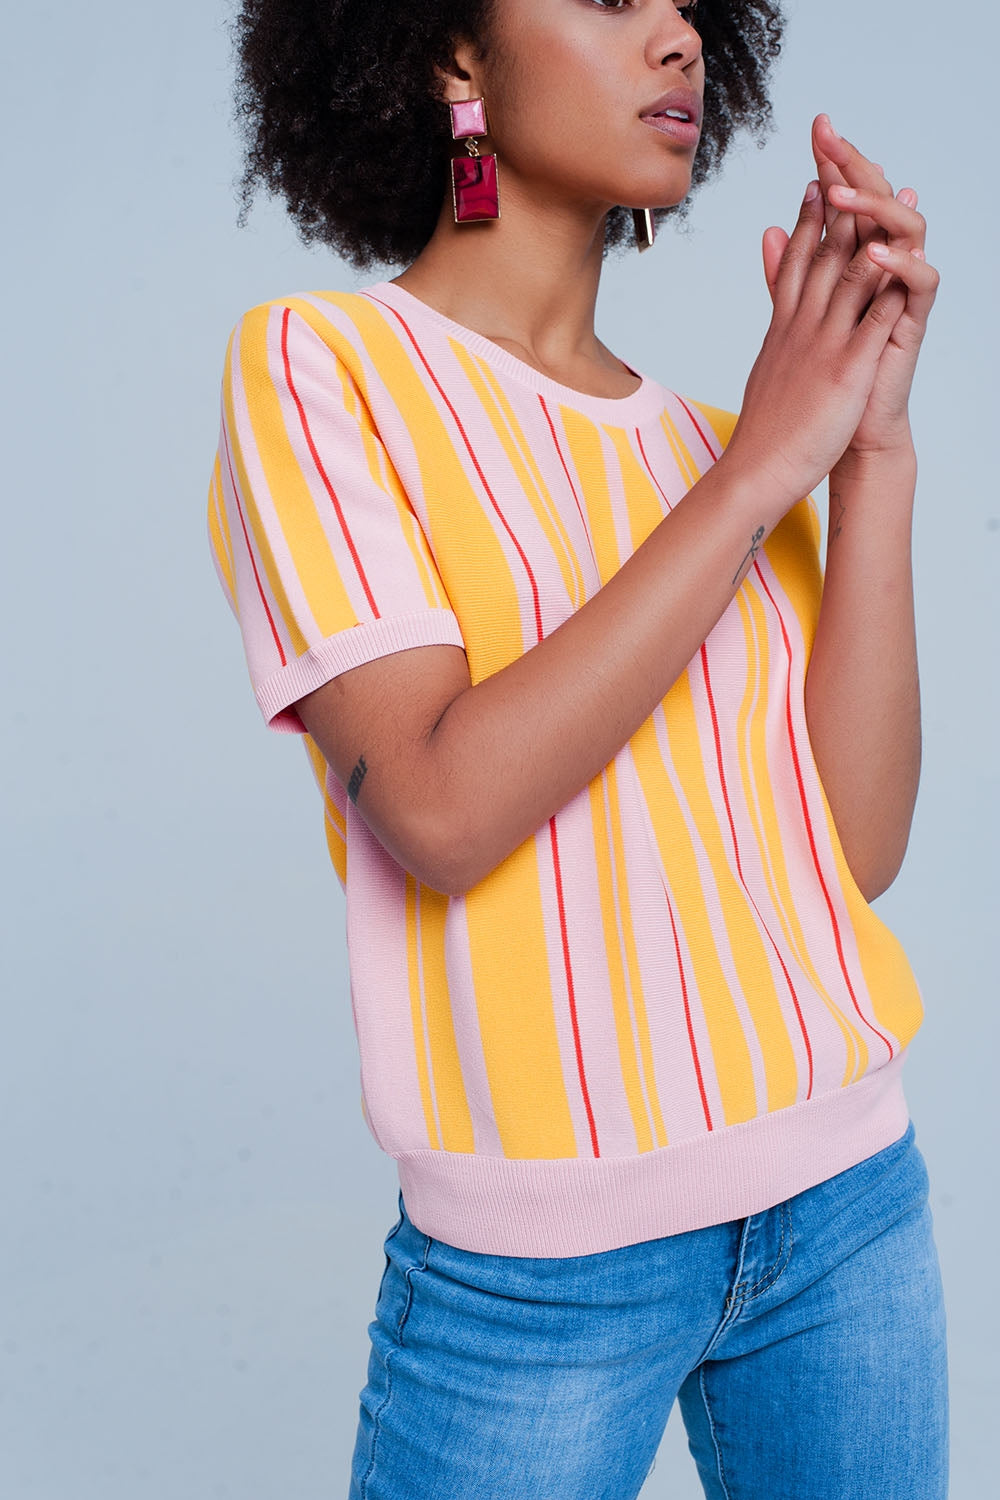 Pink Striped Short Sleeve Sweater-Women - Apparel - Sweaters - Pull Over-Product Details Light pink fine knittd jumper from thin viscose and polyamide in vertical stripes yellow and orange colored. The pullover contains short sleeves and a round neck both finished with an elastic ribbed edge. The hip is also ending with a stretchy band and has a metal pleated Q2 logo attached to it.-Keyomi-Sook